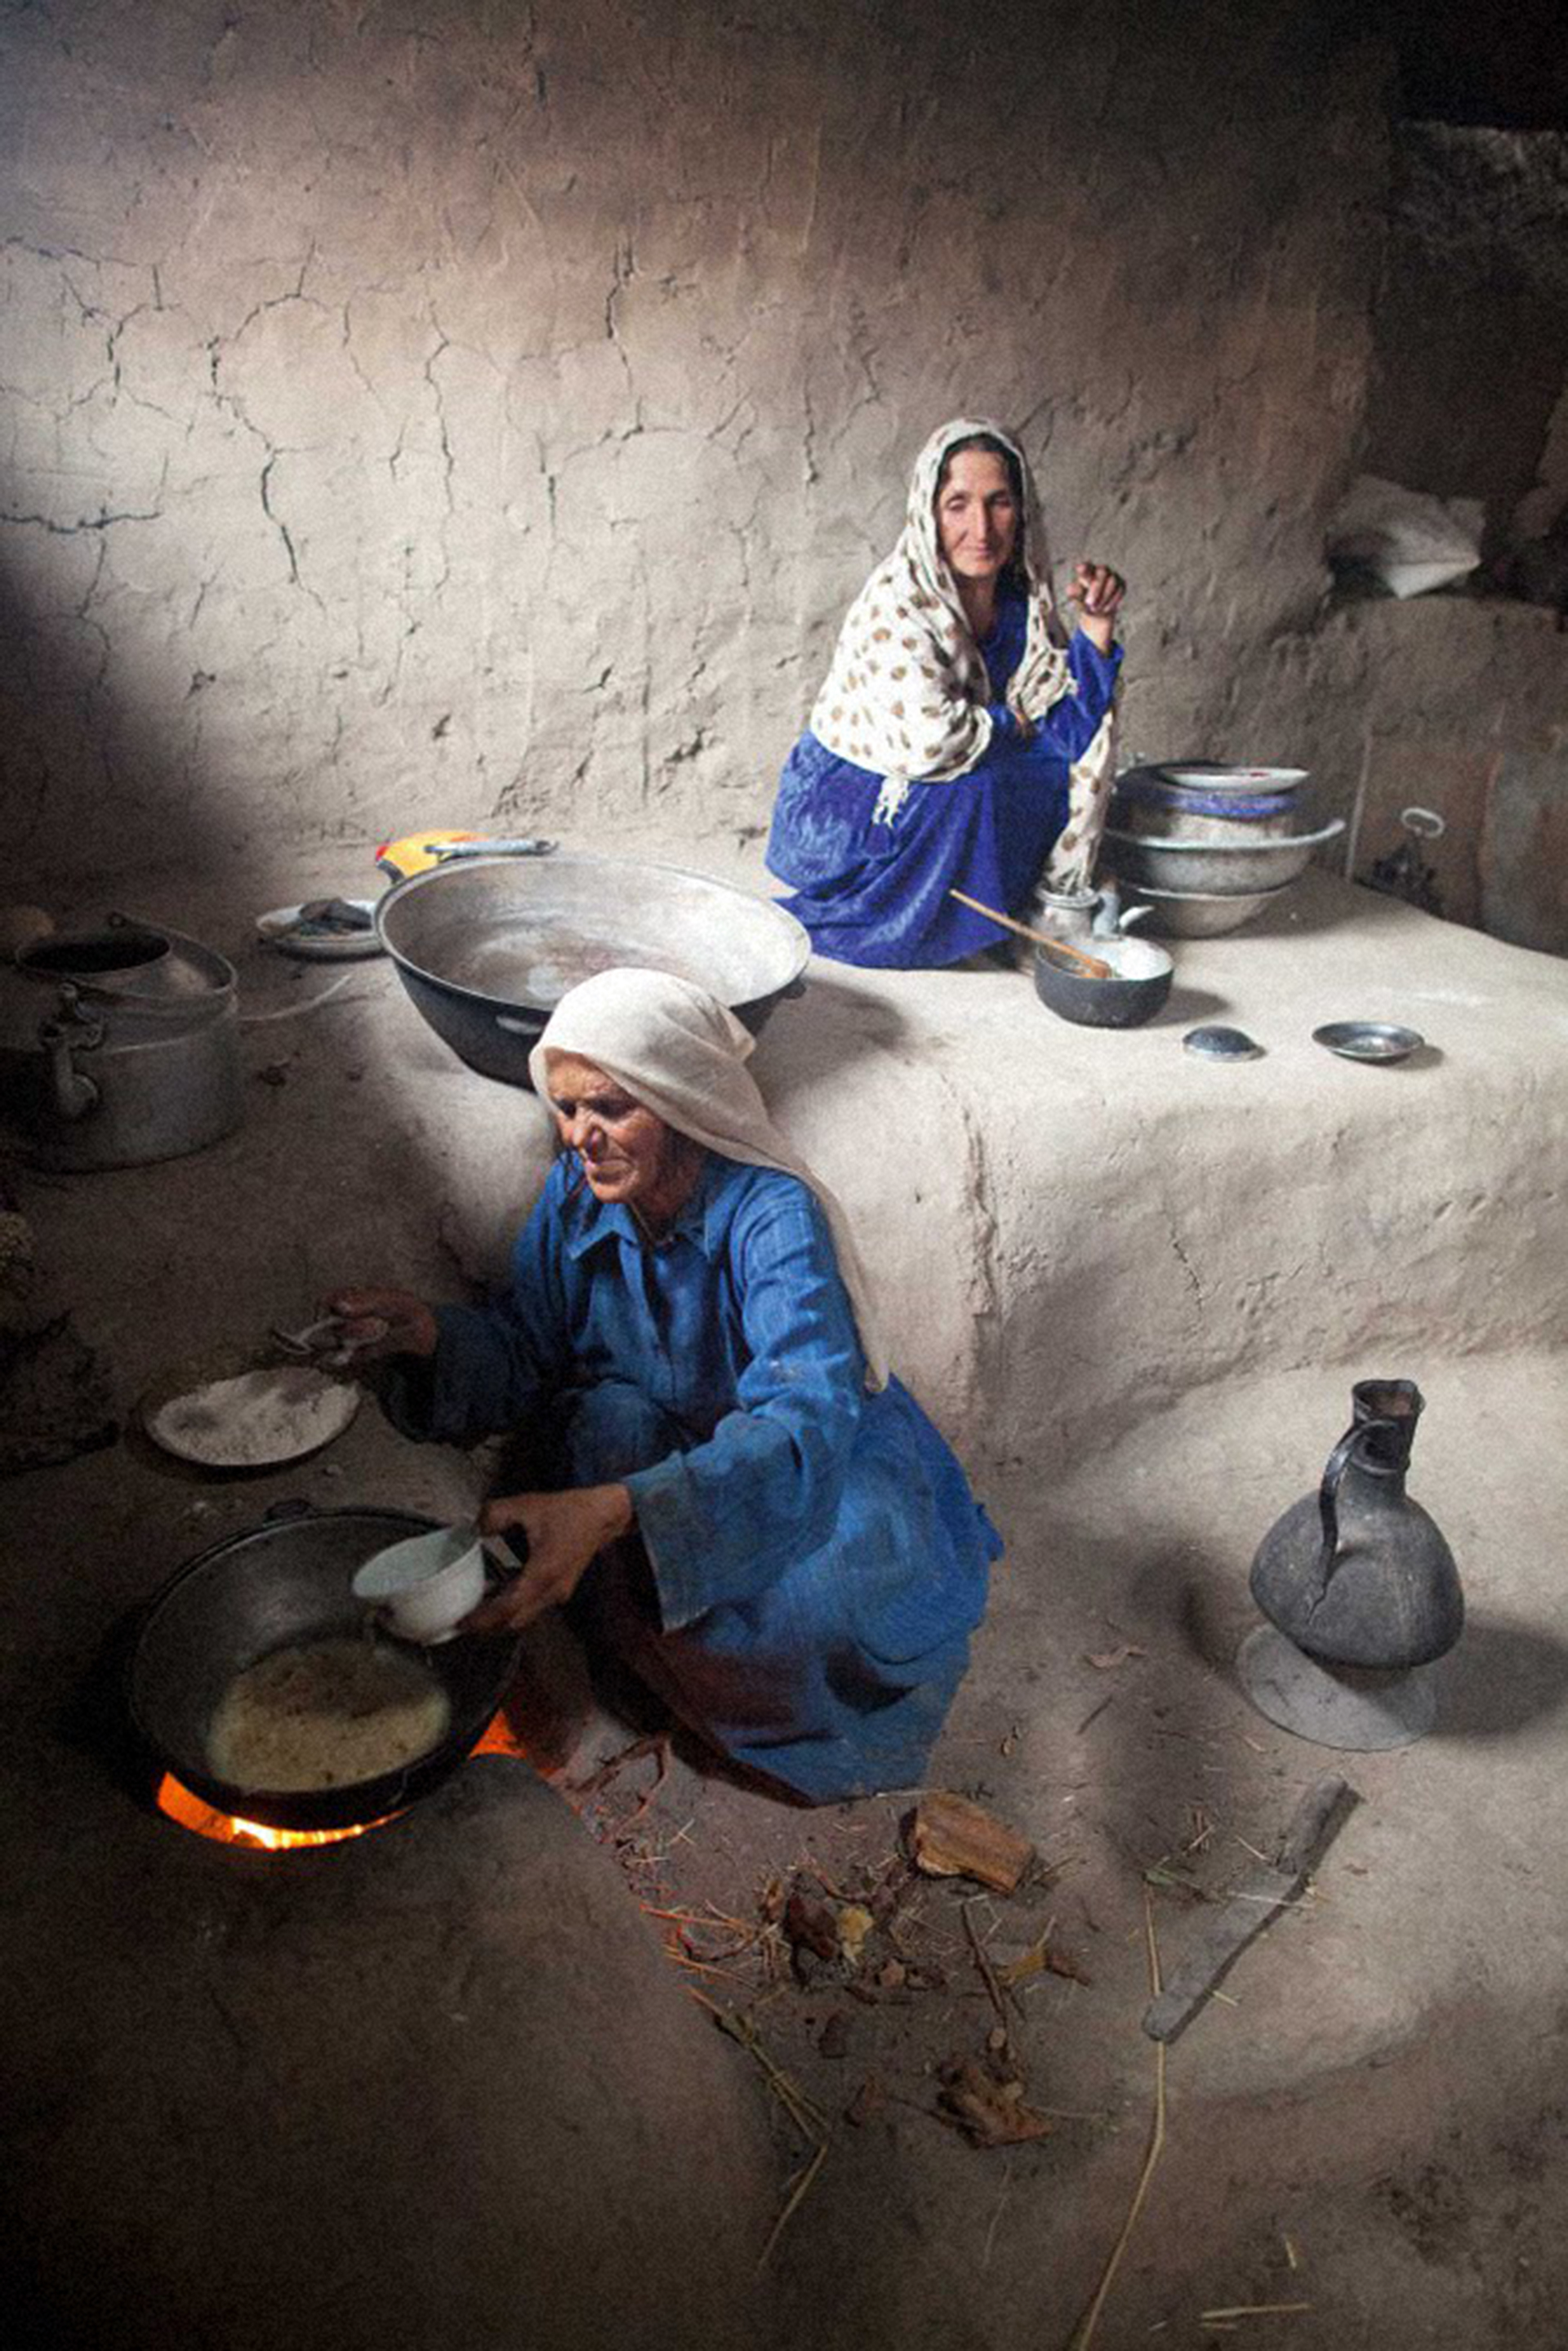 With Our Own Hands: A Celebration of Food and Life in the Pamir Mountains of Afghanistan and Tajikistan  Frederik Van Oudenhoven, Jamila Haider — LM Publishers, Volendam, 2017